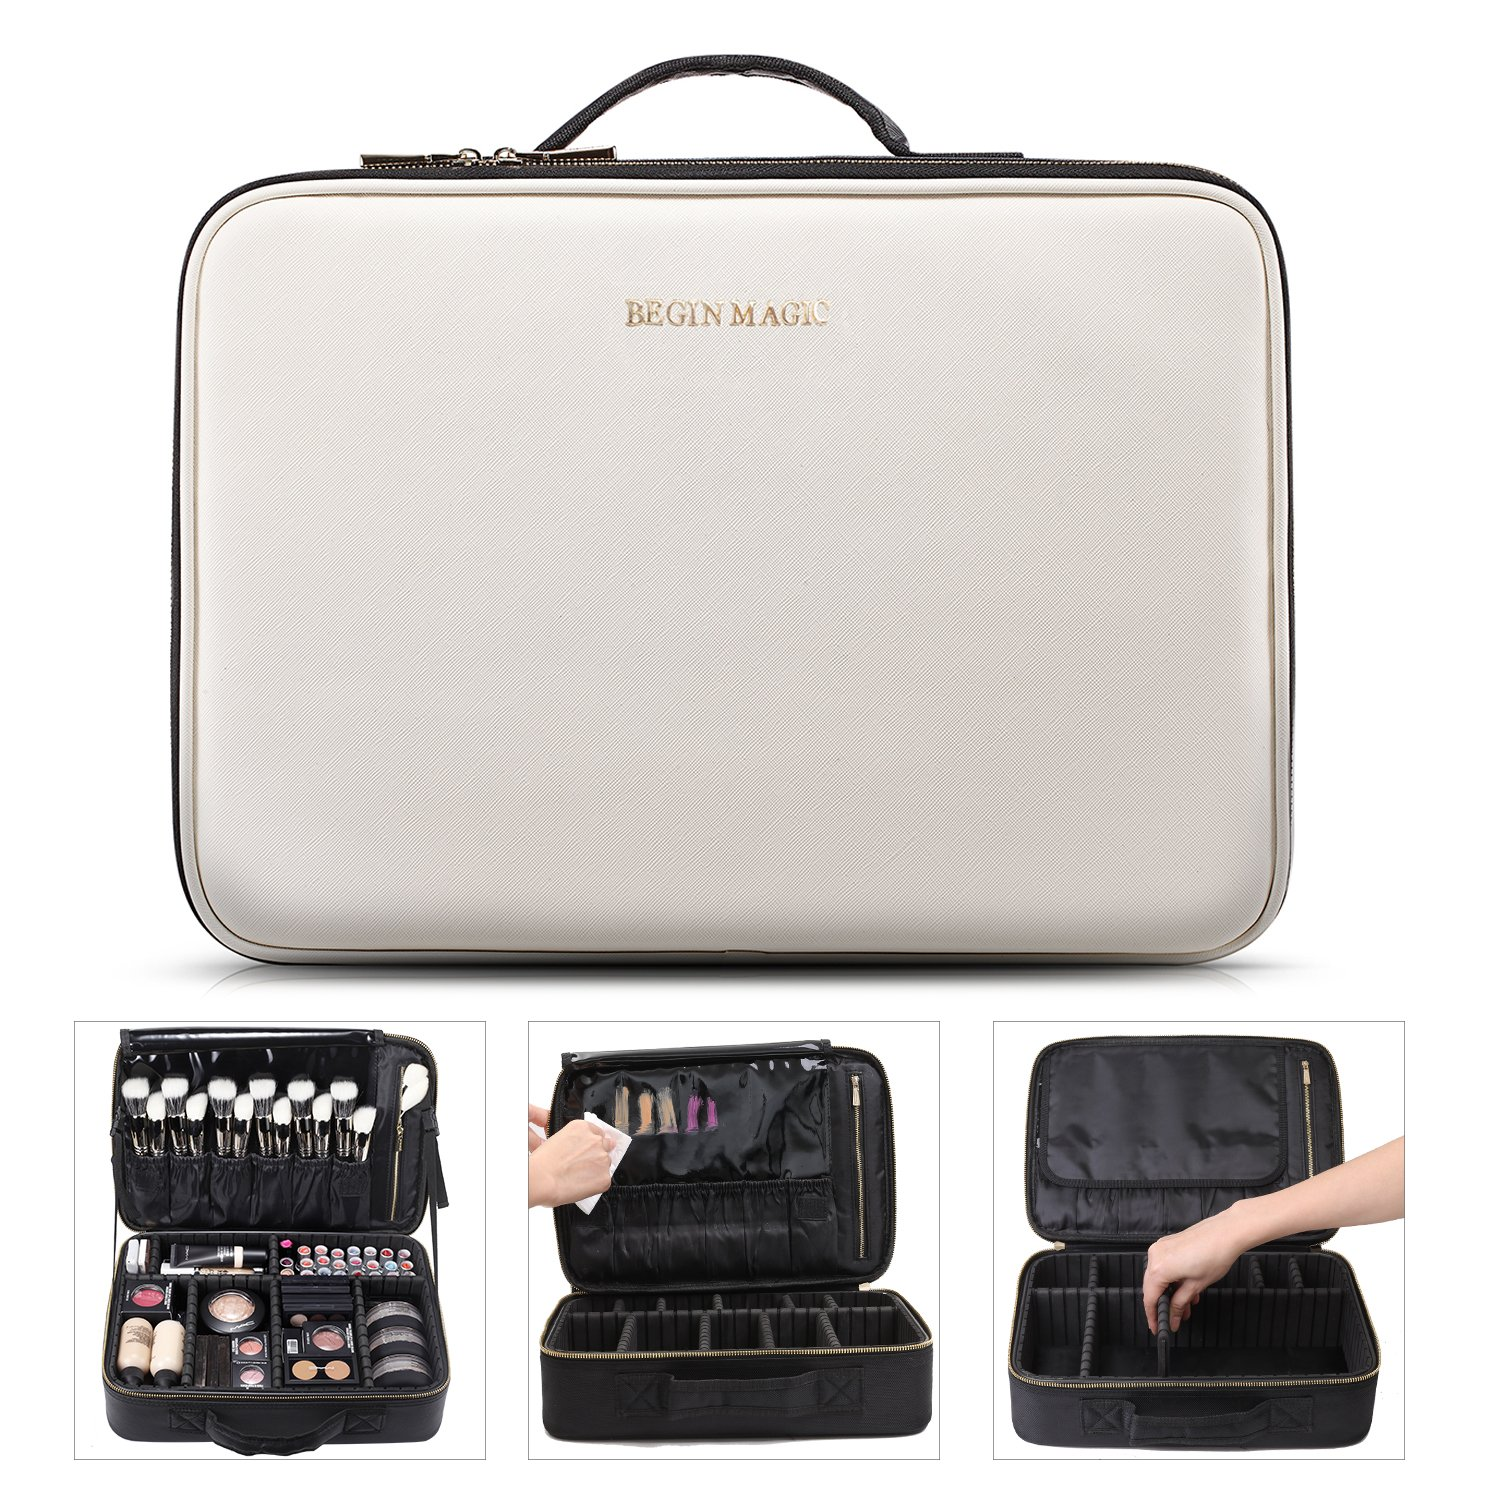 Begin Magic Portable Makeup Train Case/Travel Makeup Bag/Medium Cosmetic Organizer Case With Pu Leather (Black/White) by Begin Magic